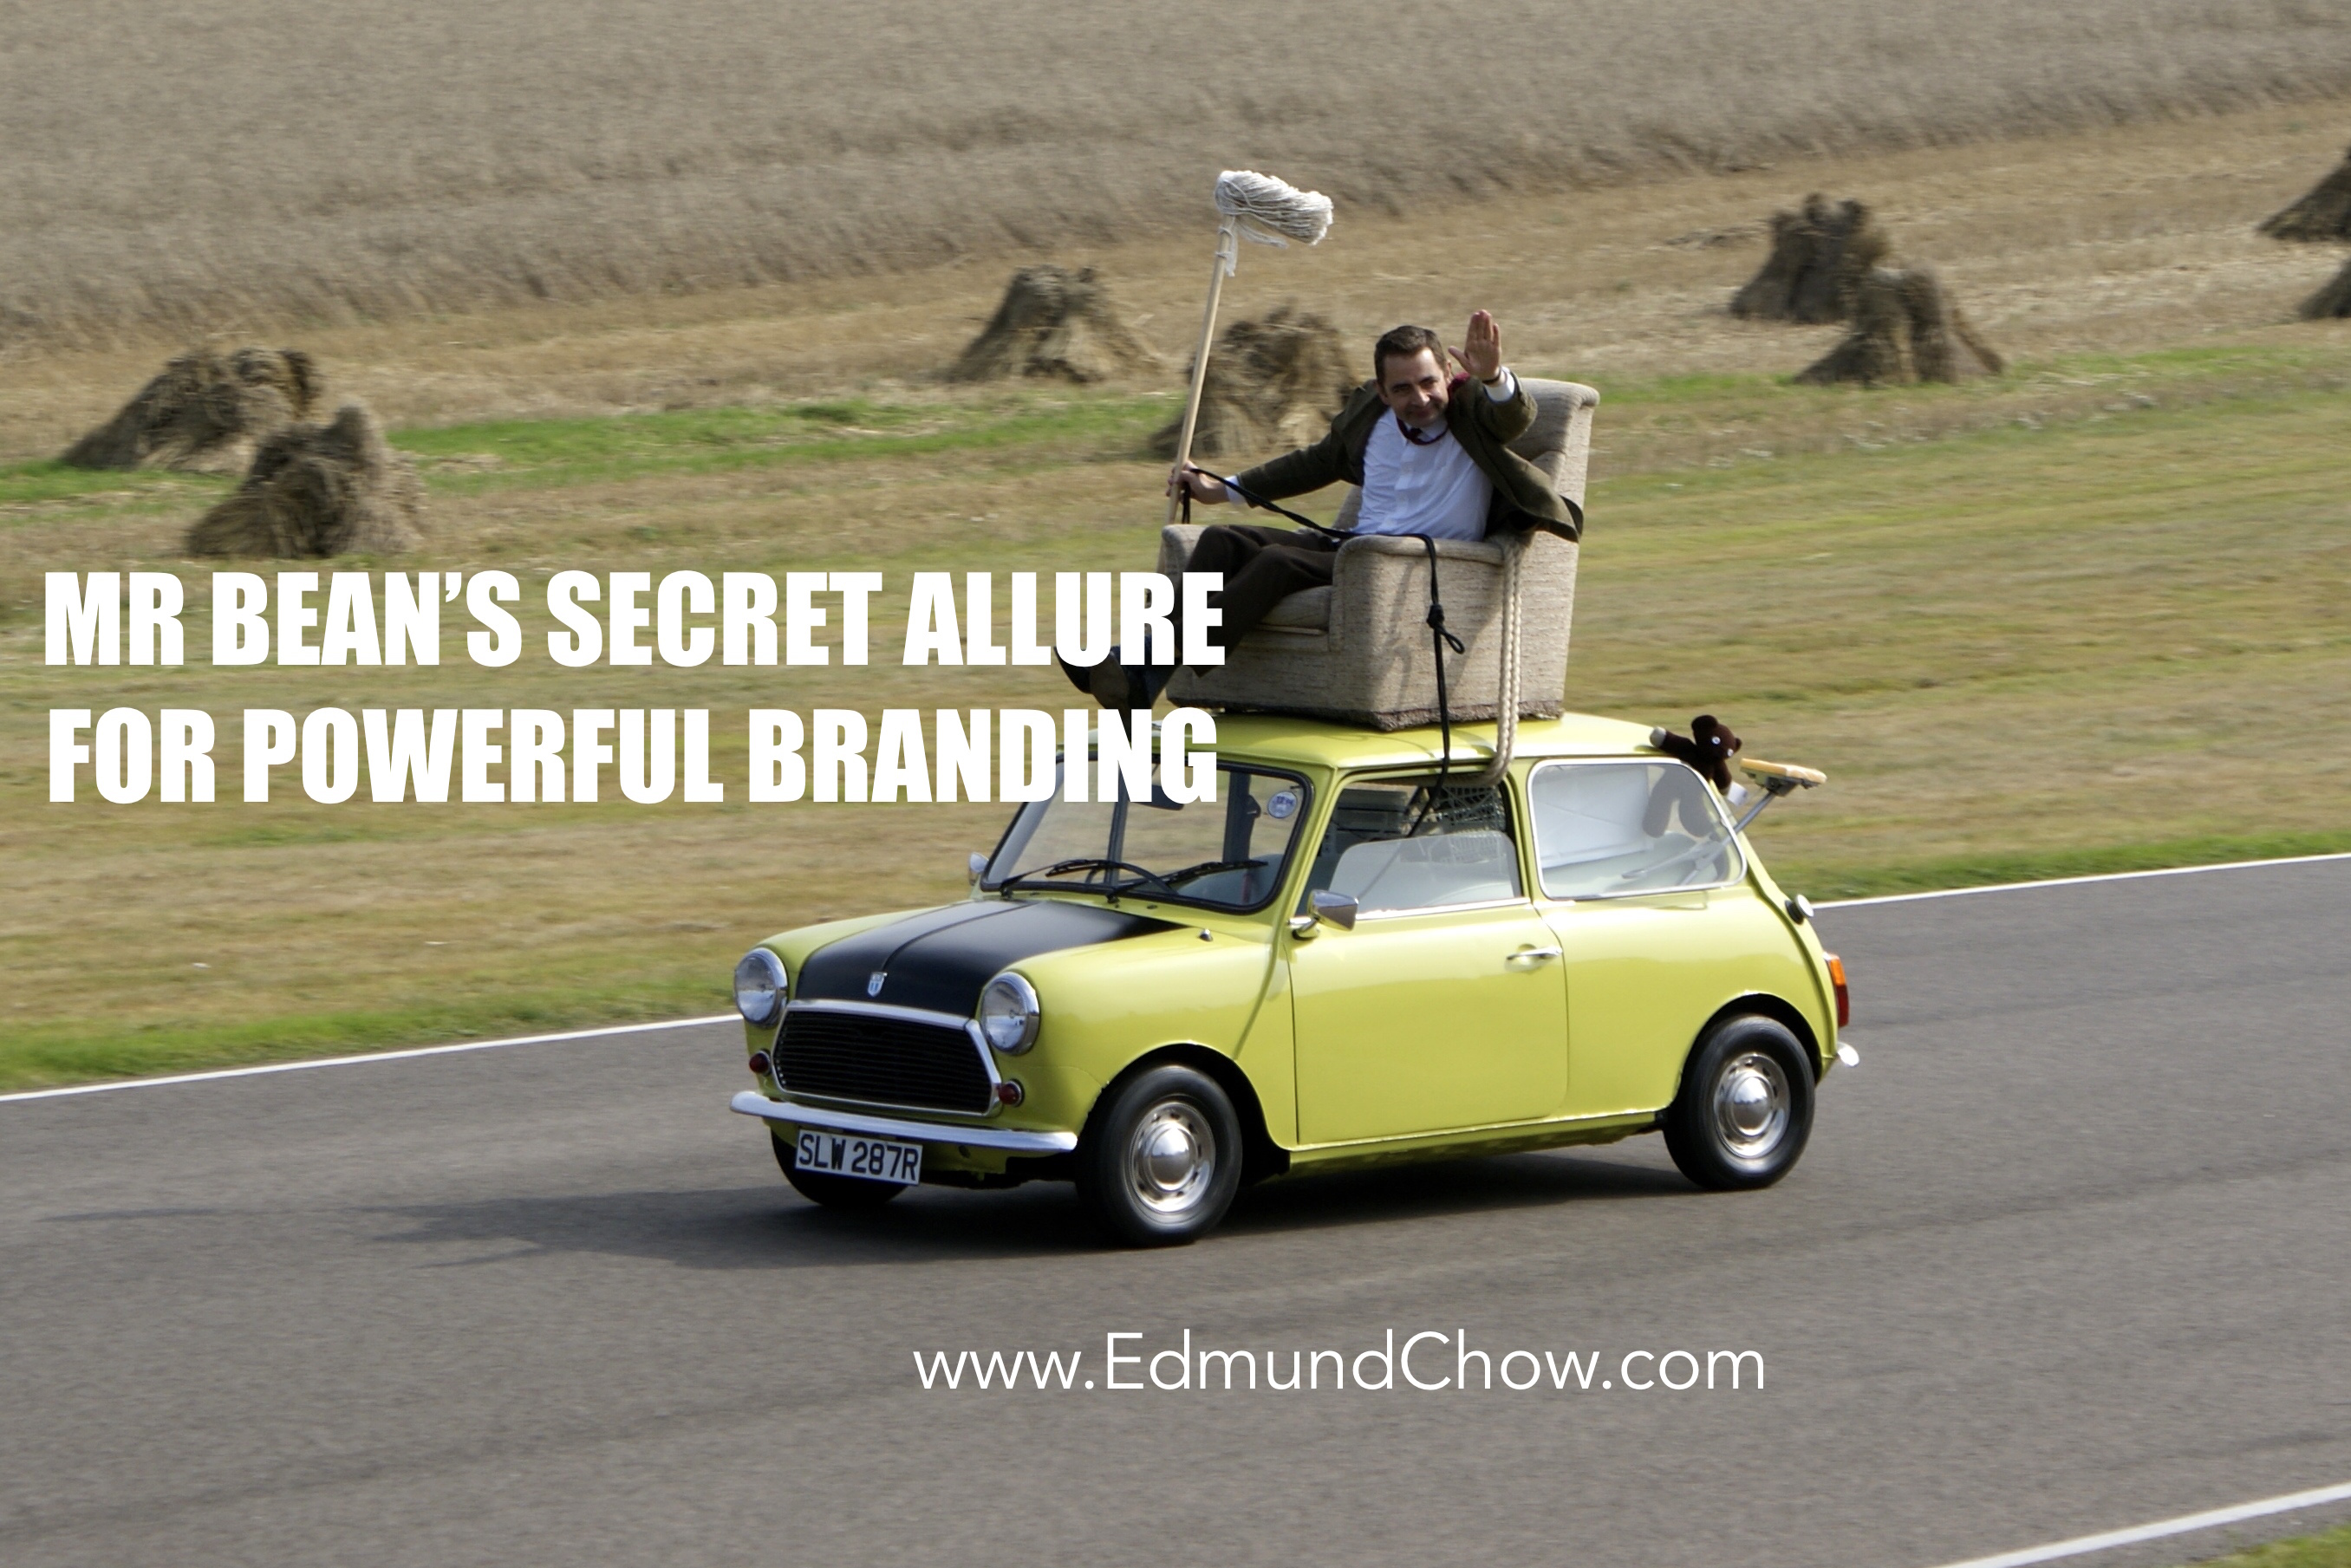 Storytelling and Story Selling: Mr Bean's Secret Allure for Powerful Branding